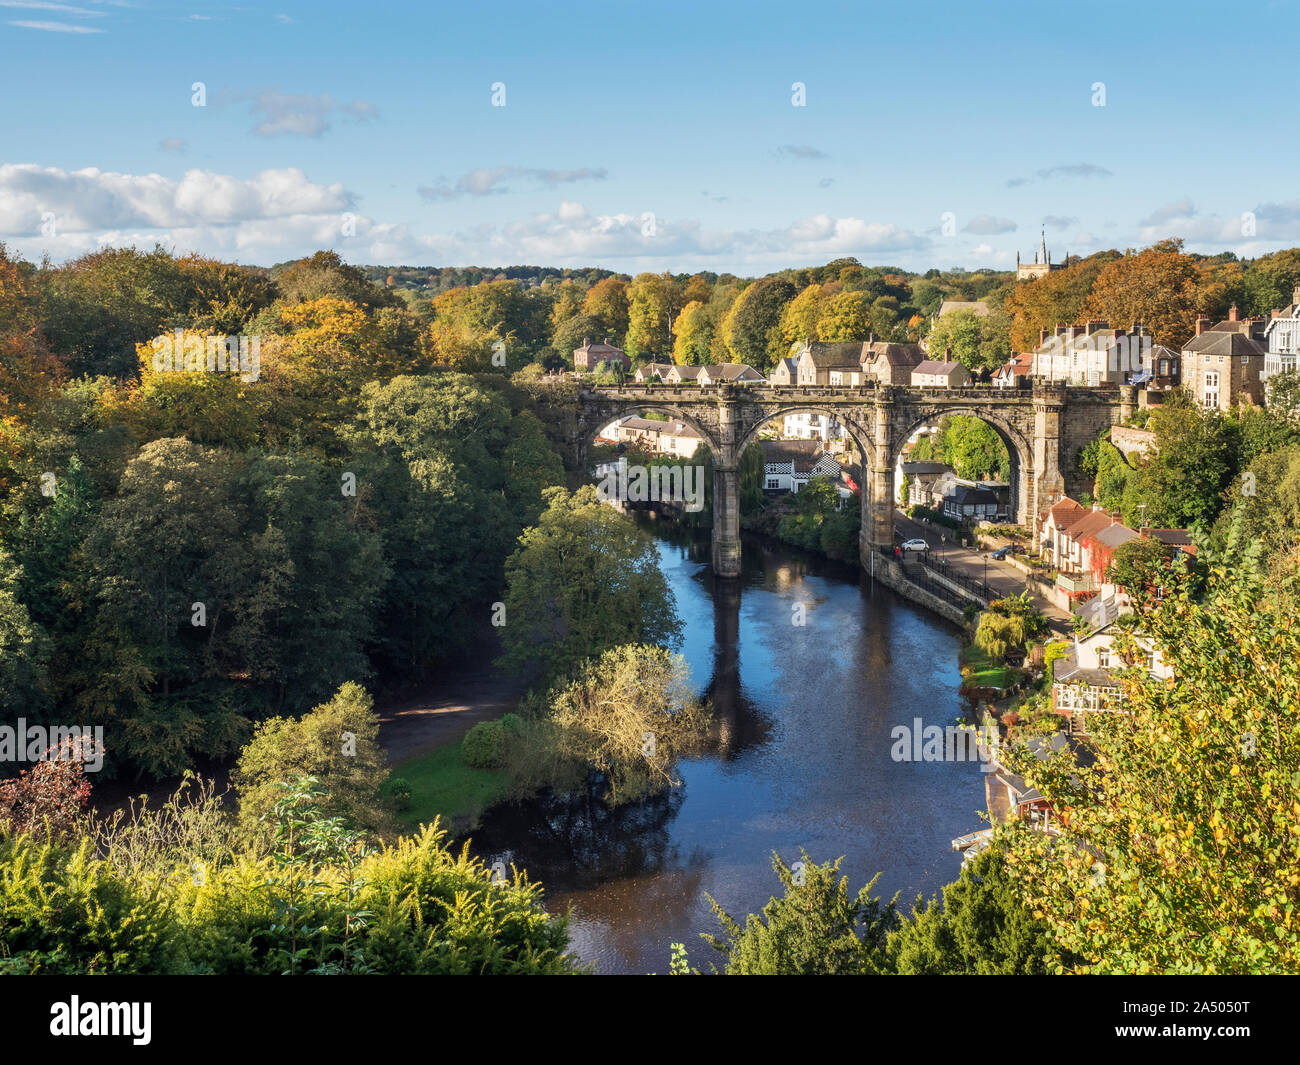 Viaduct over the River Nidd in autumn from the Castle Grounds at Knaresborough North Yorkshire England Stock Photo